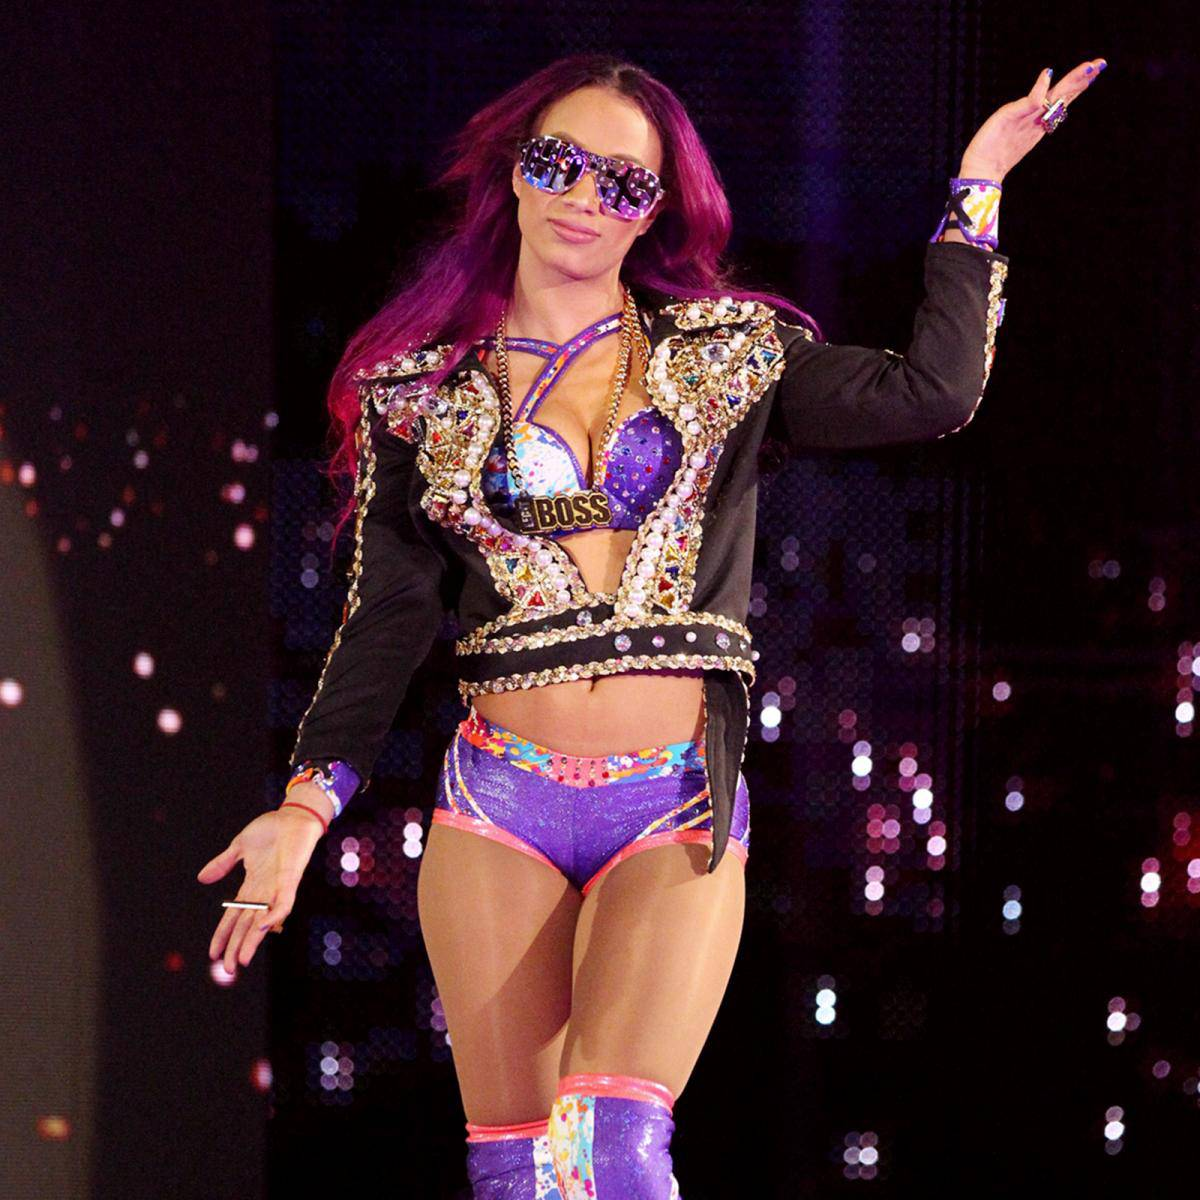 WWE-Sasha-Banks-Fastlane-2017-Purple-Sparkle-Jacket